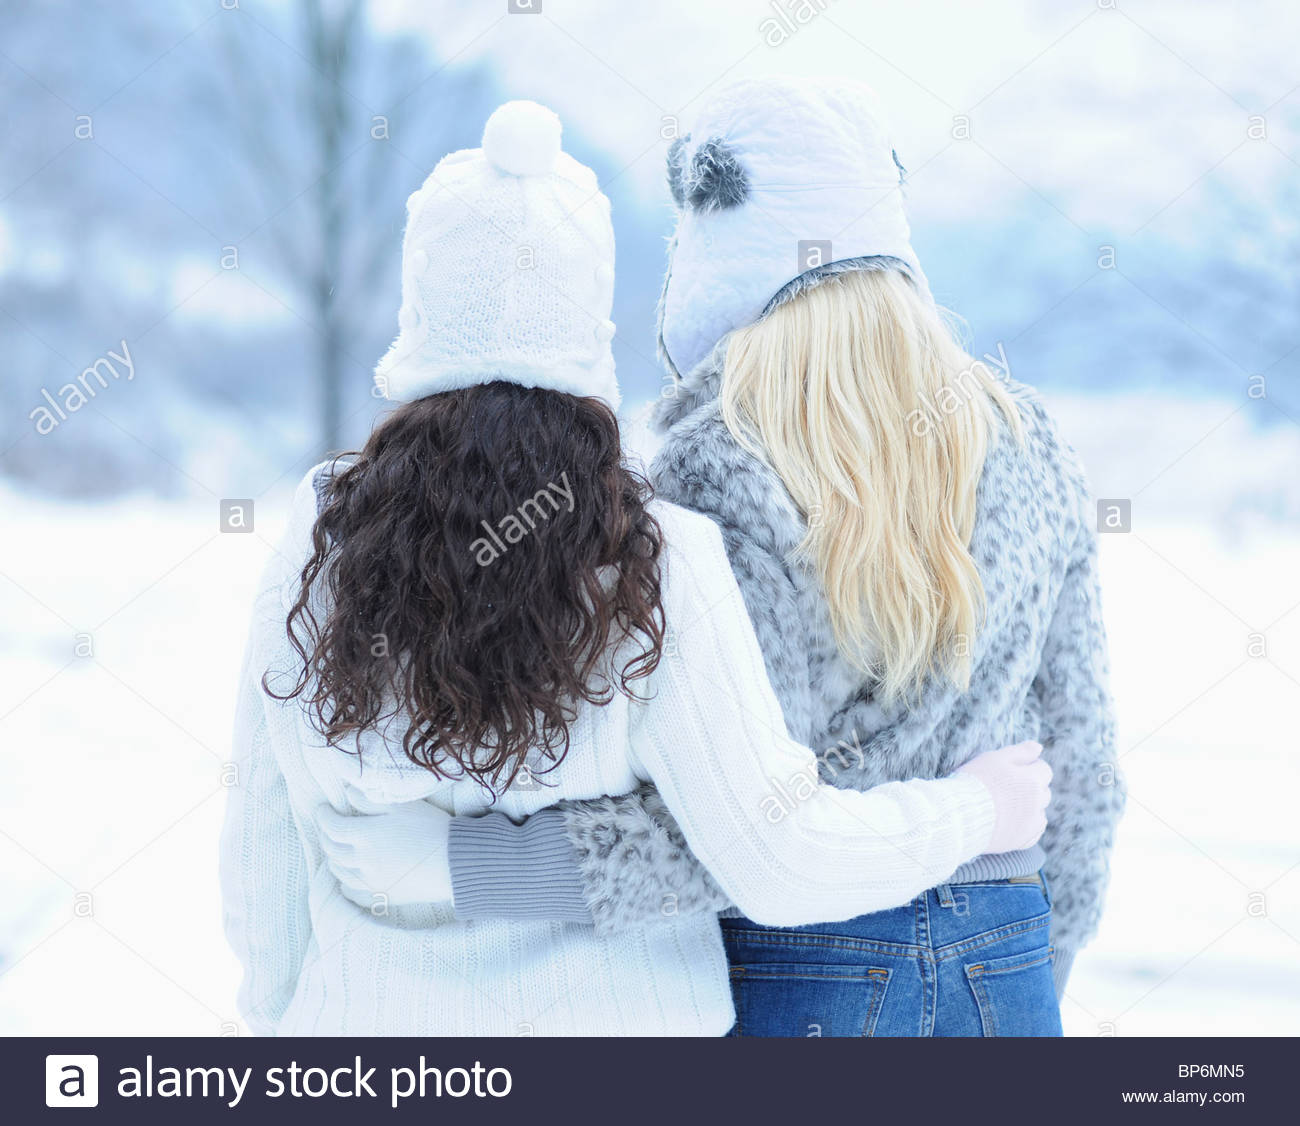 Rear view of two young women hugging on winter day - Stock Image